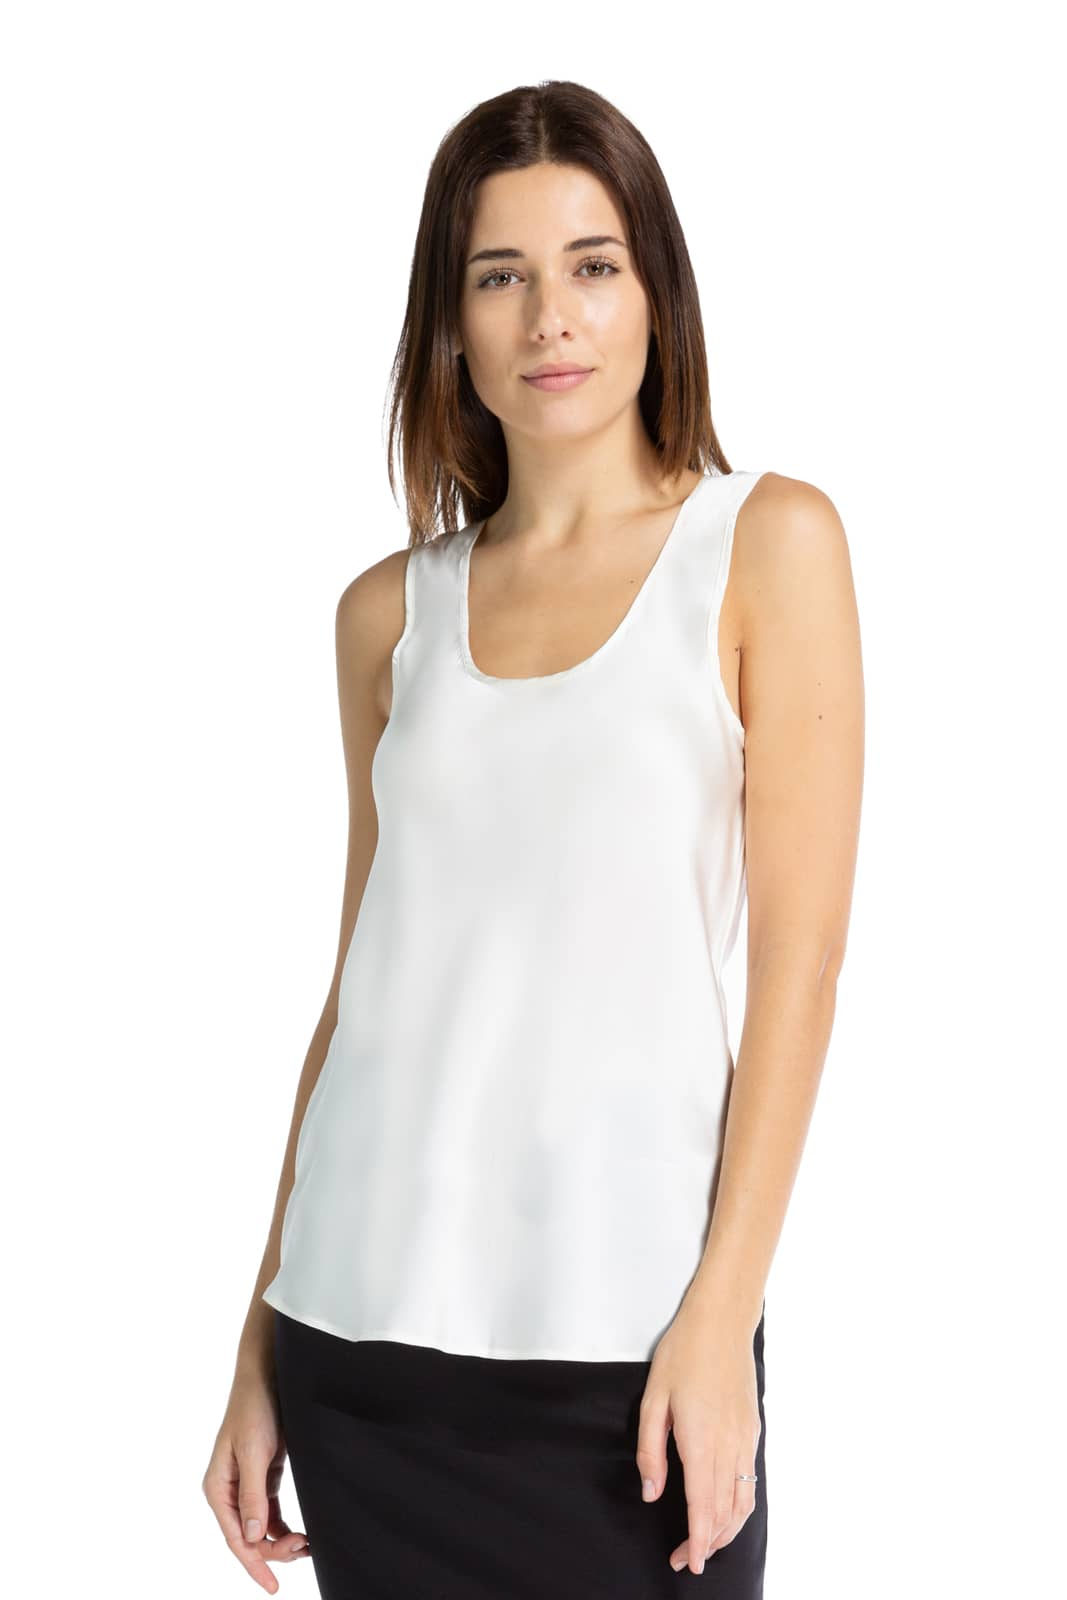 Women's 100% Pure Mulberry Silk Tank Top Camisole - Fishers Finery